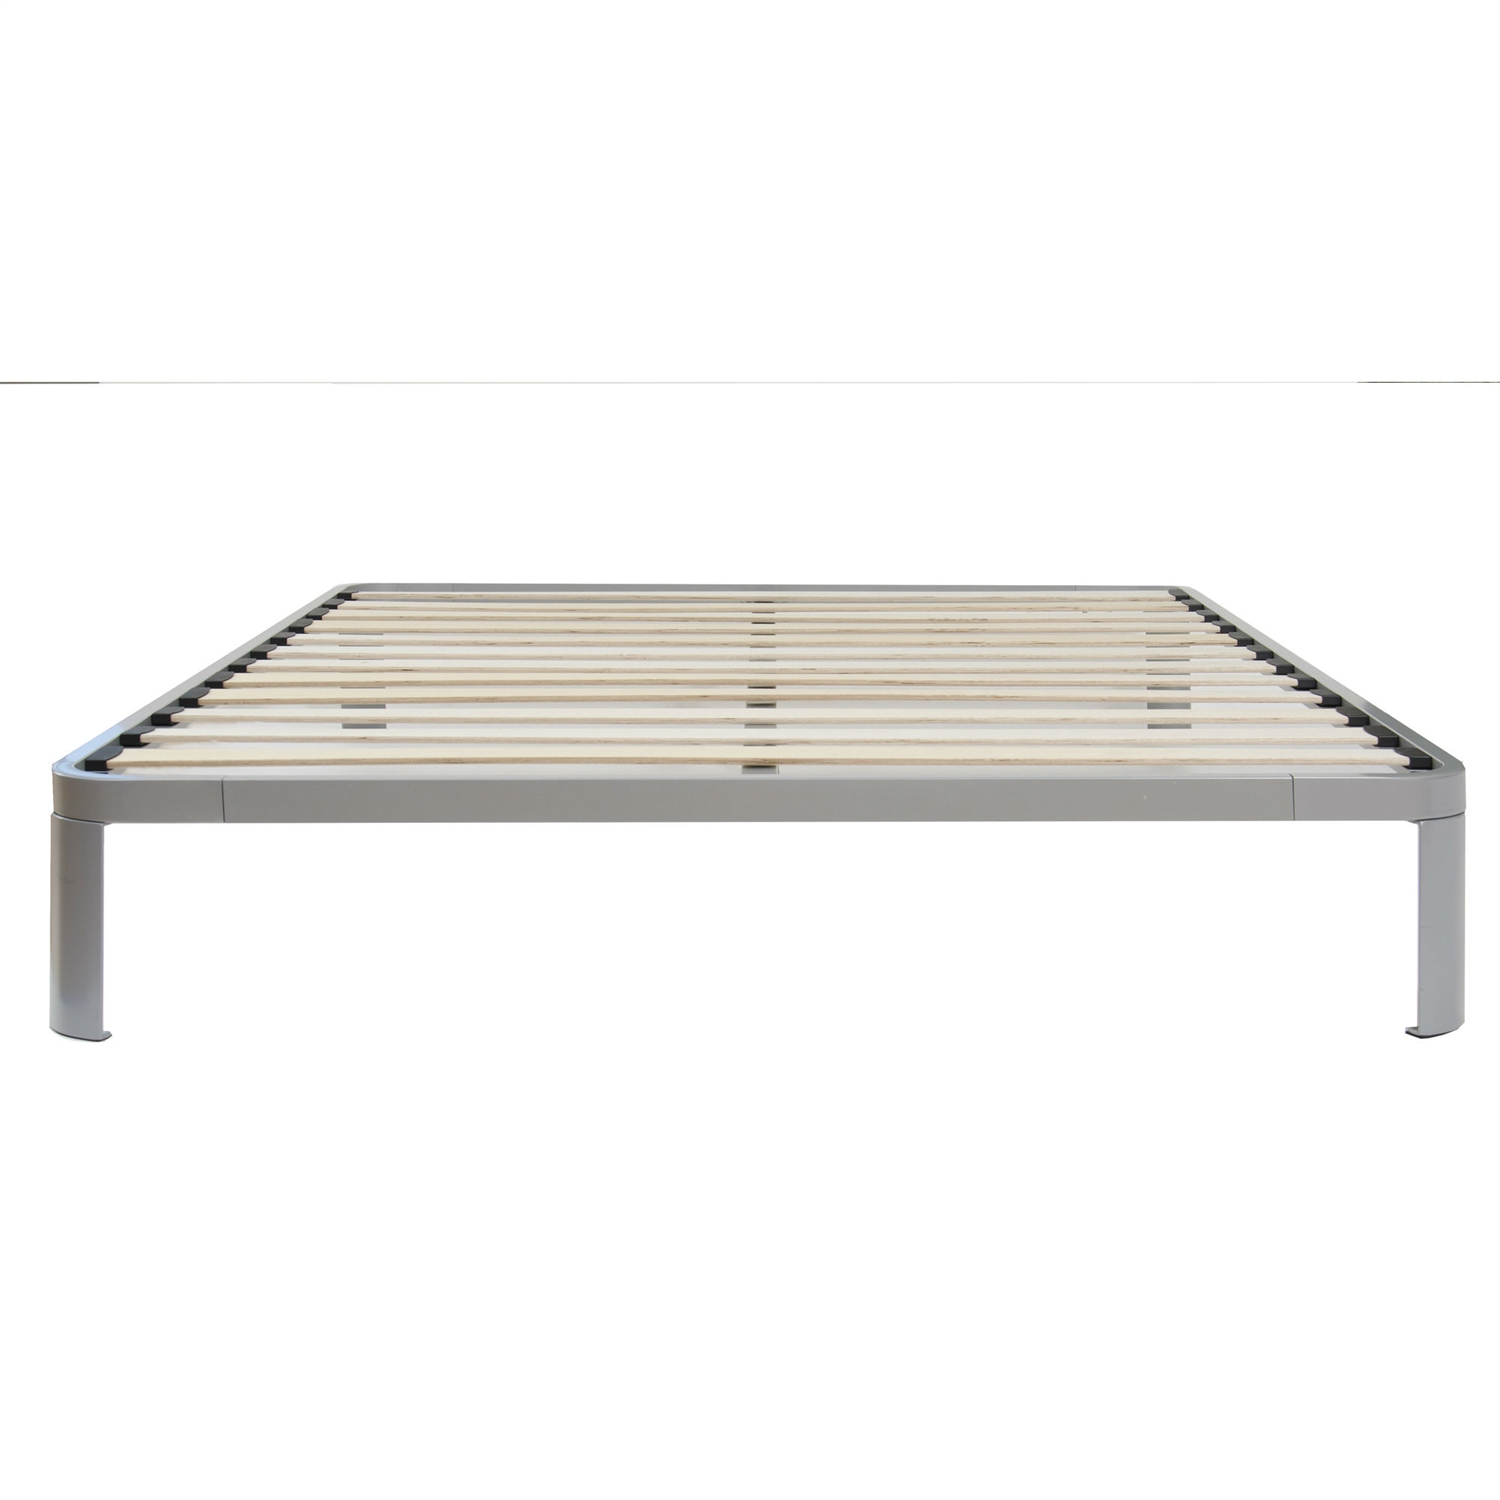 King size Luna Metal Platform Bed Frame with Wood Slats ...